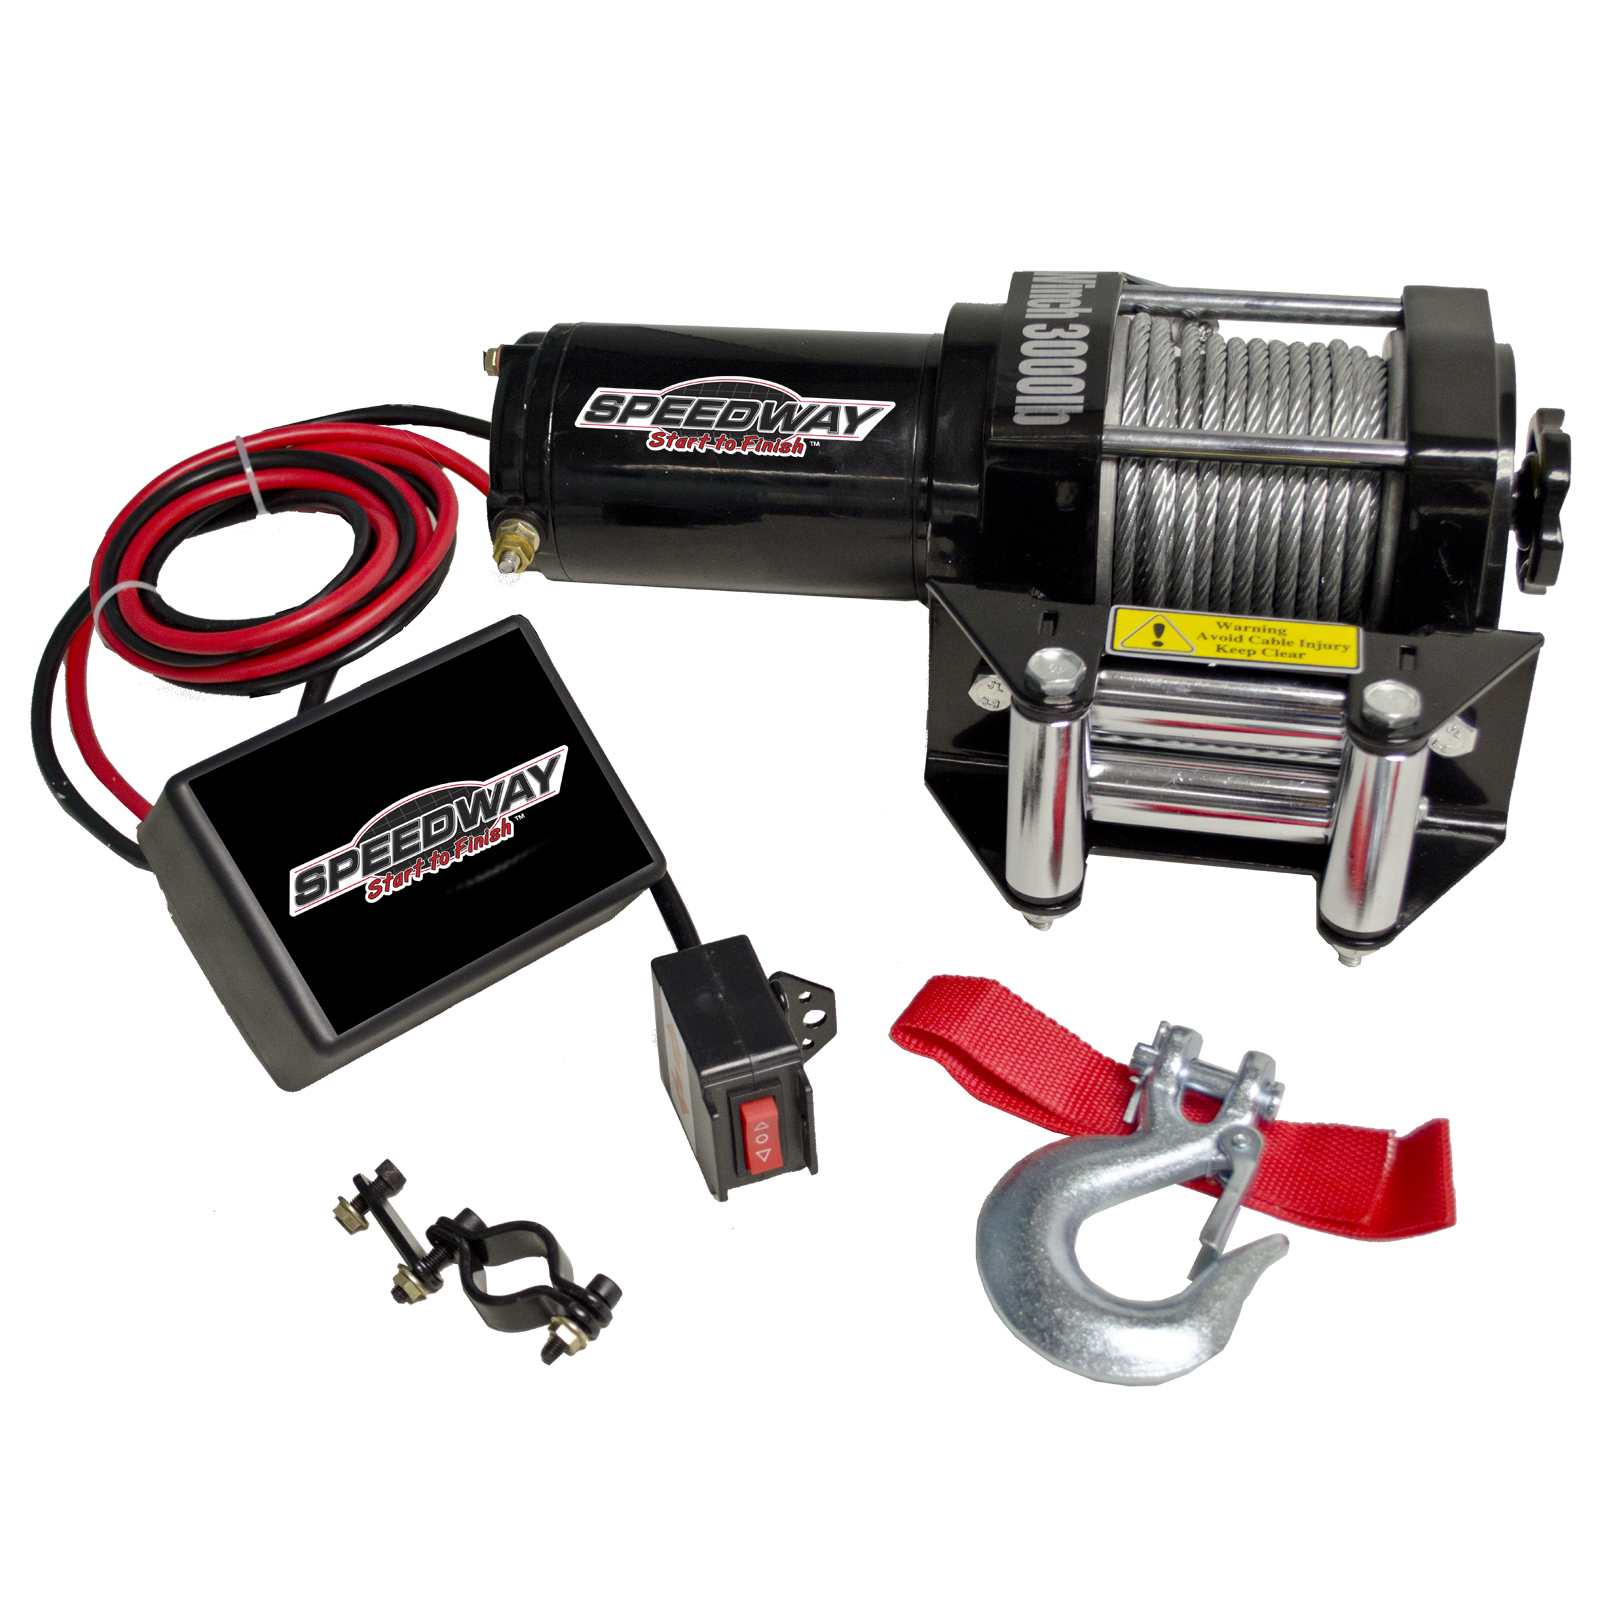 Speedway Start to Finish 3000 lb 12 Volt Winch with Roller Fairlead